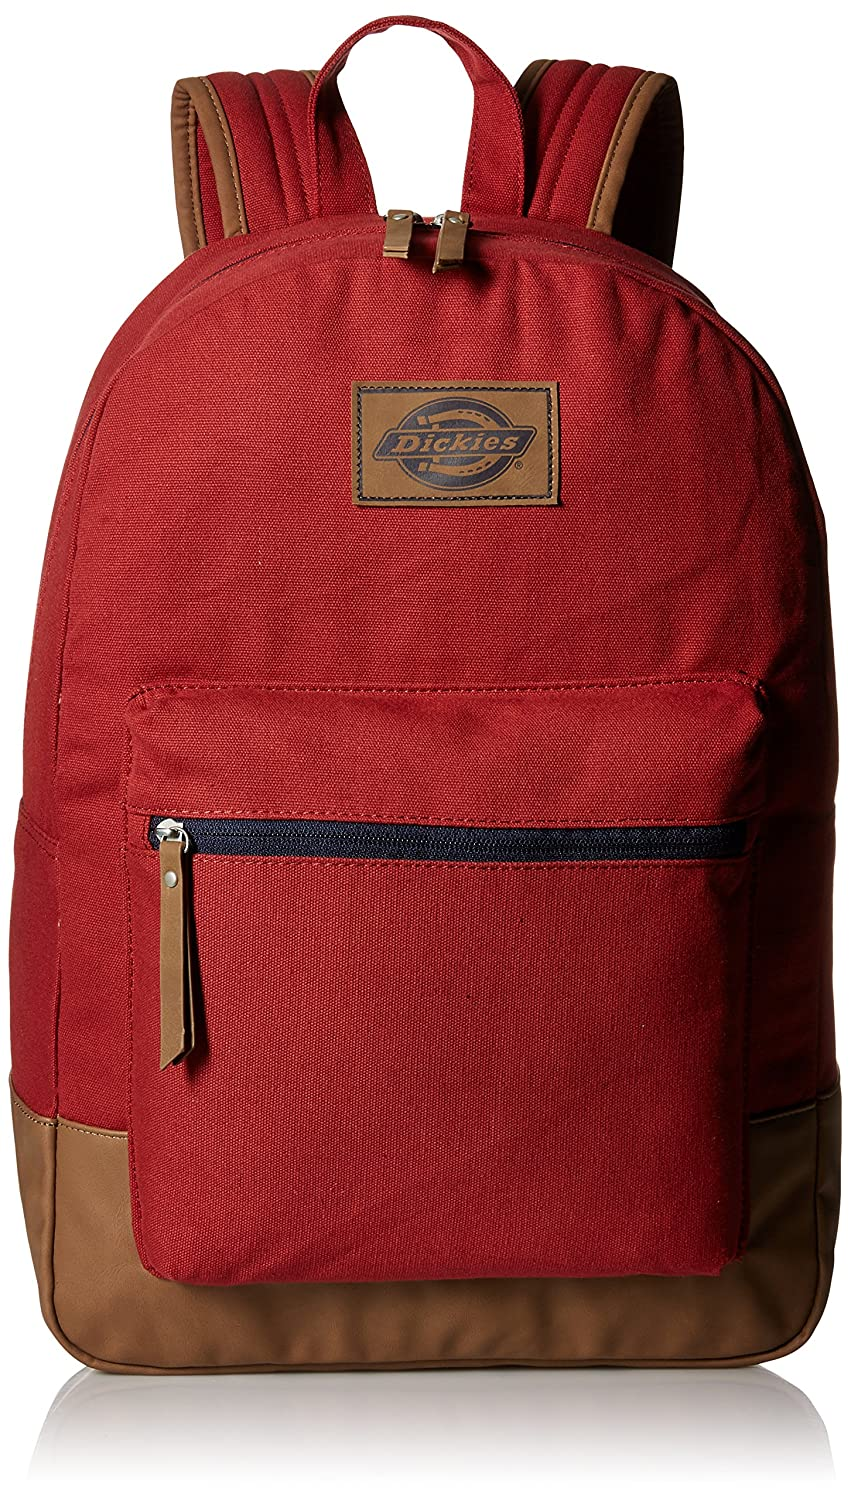 Rouge taille unique Dickies Dickies Colton toile sac sac à dos